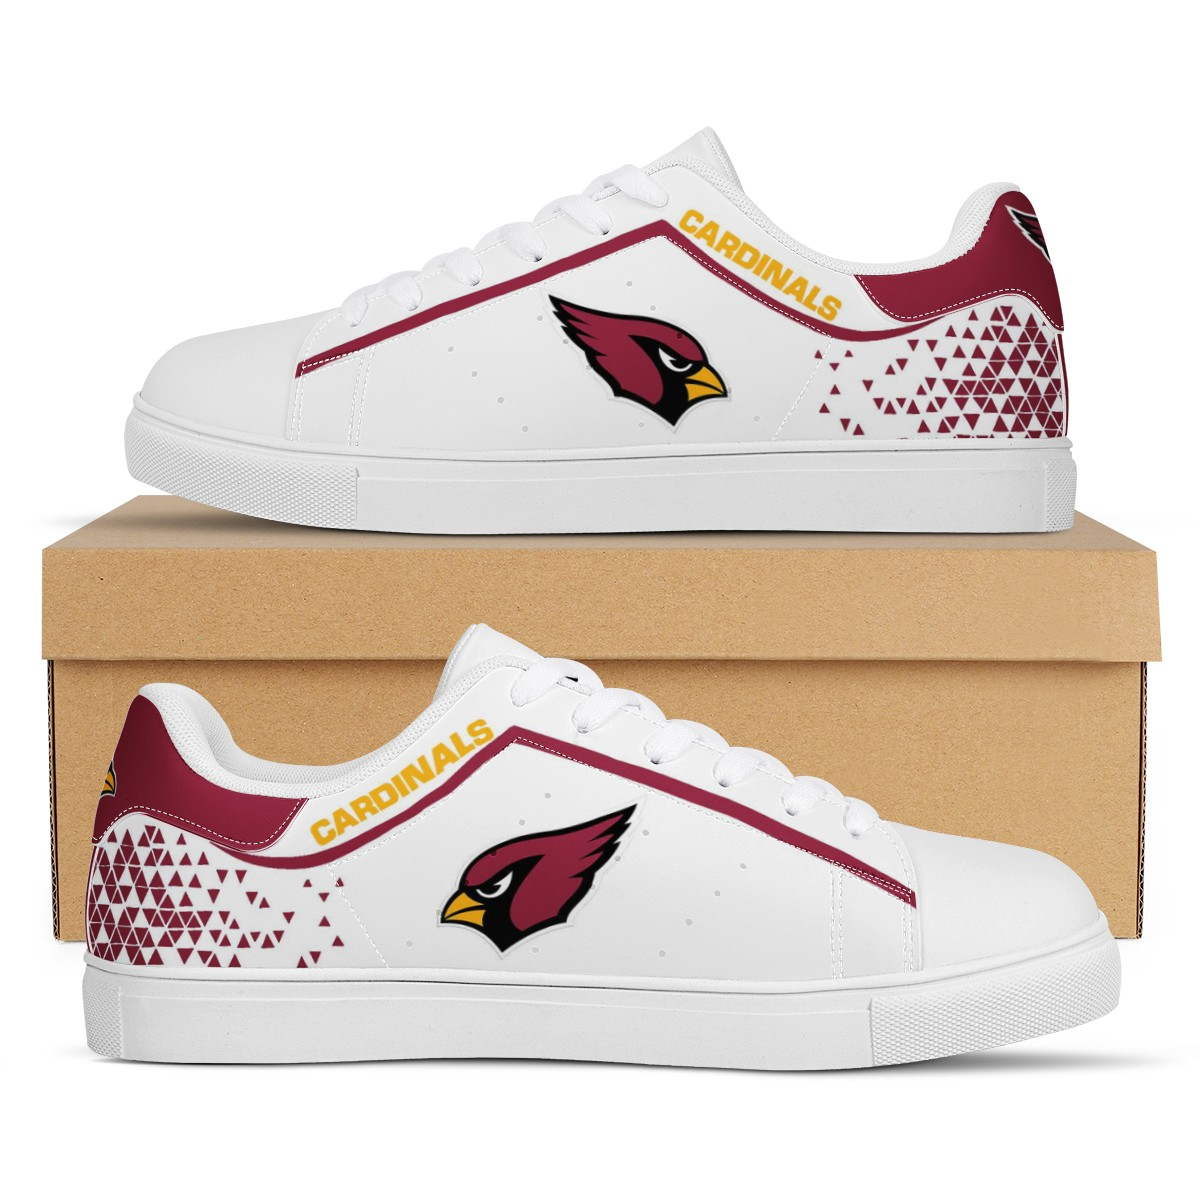 Men's Arizona Cardinals Low Top Leather Sneakers 003